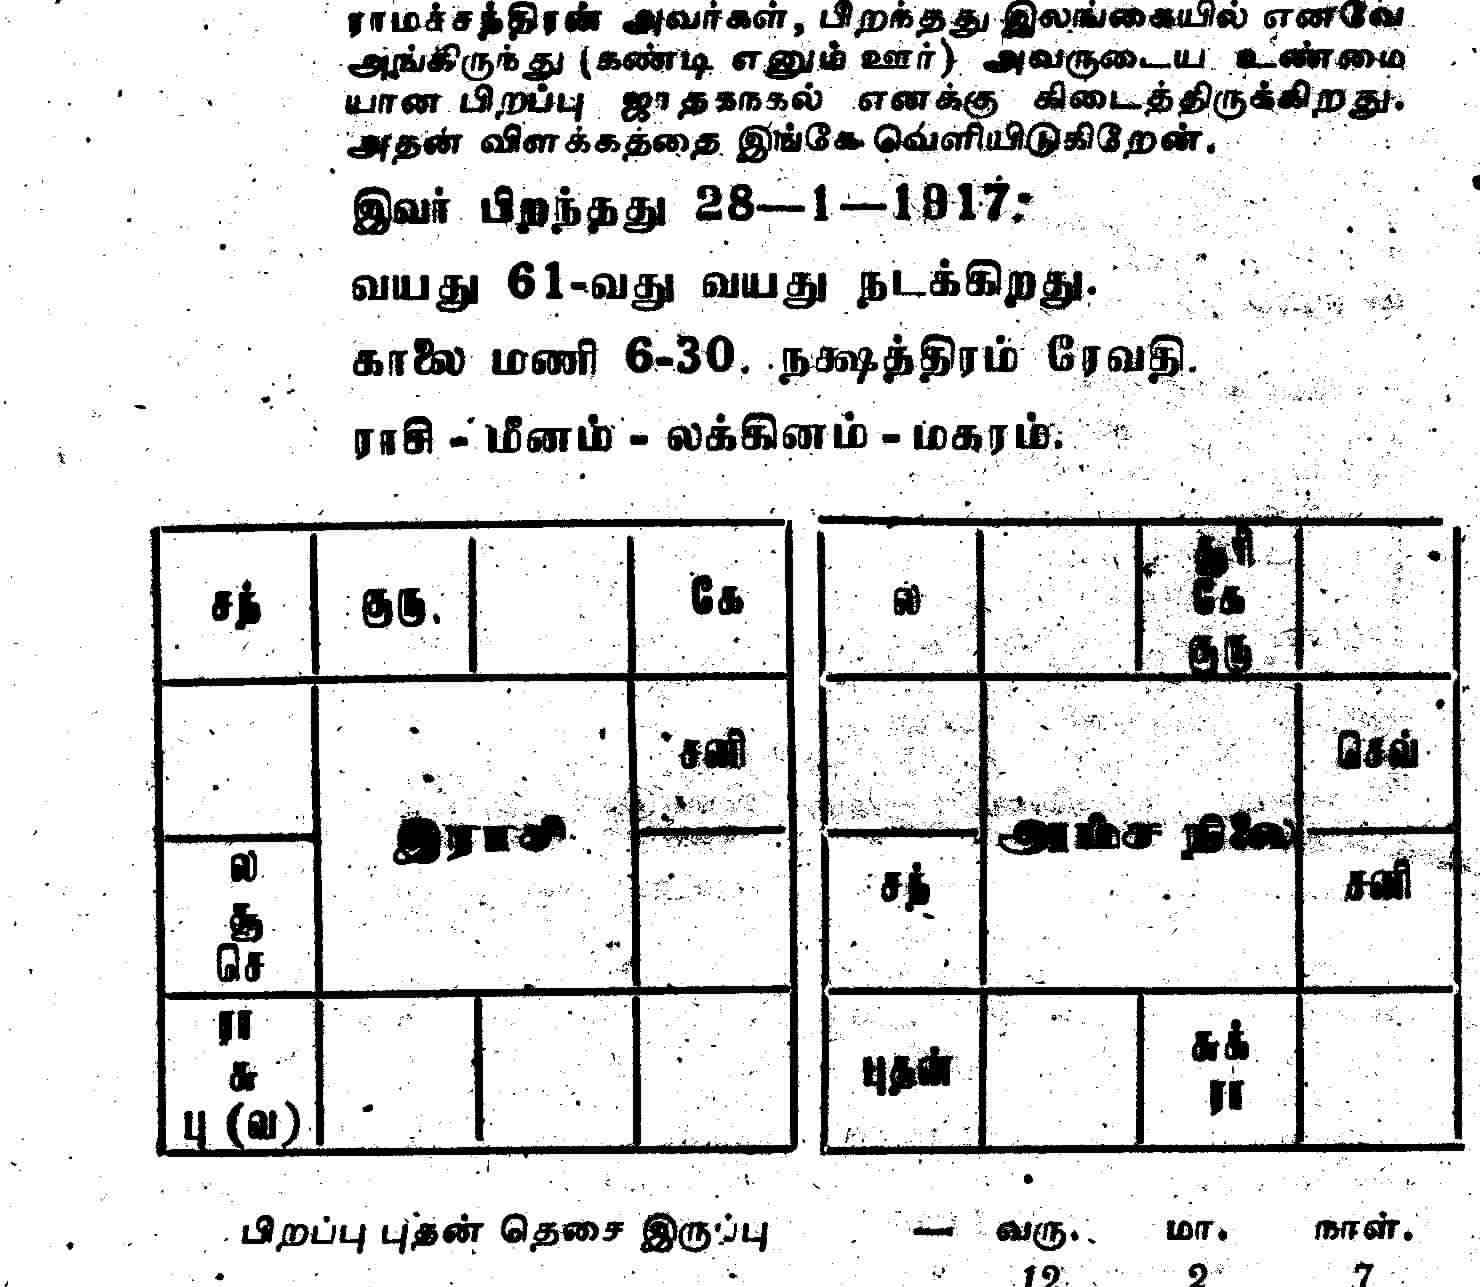 Mgr horoscope chart in tamil kamal haasan birth chart kamal hd image of tamil astrology birth chart image collections free any chart nvjuhfo Choice Image